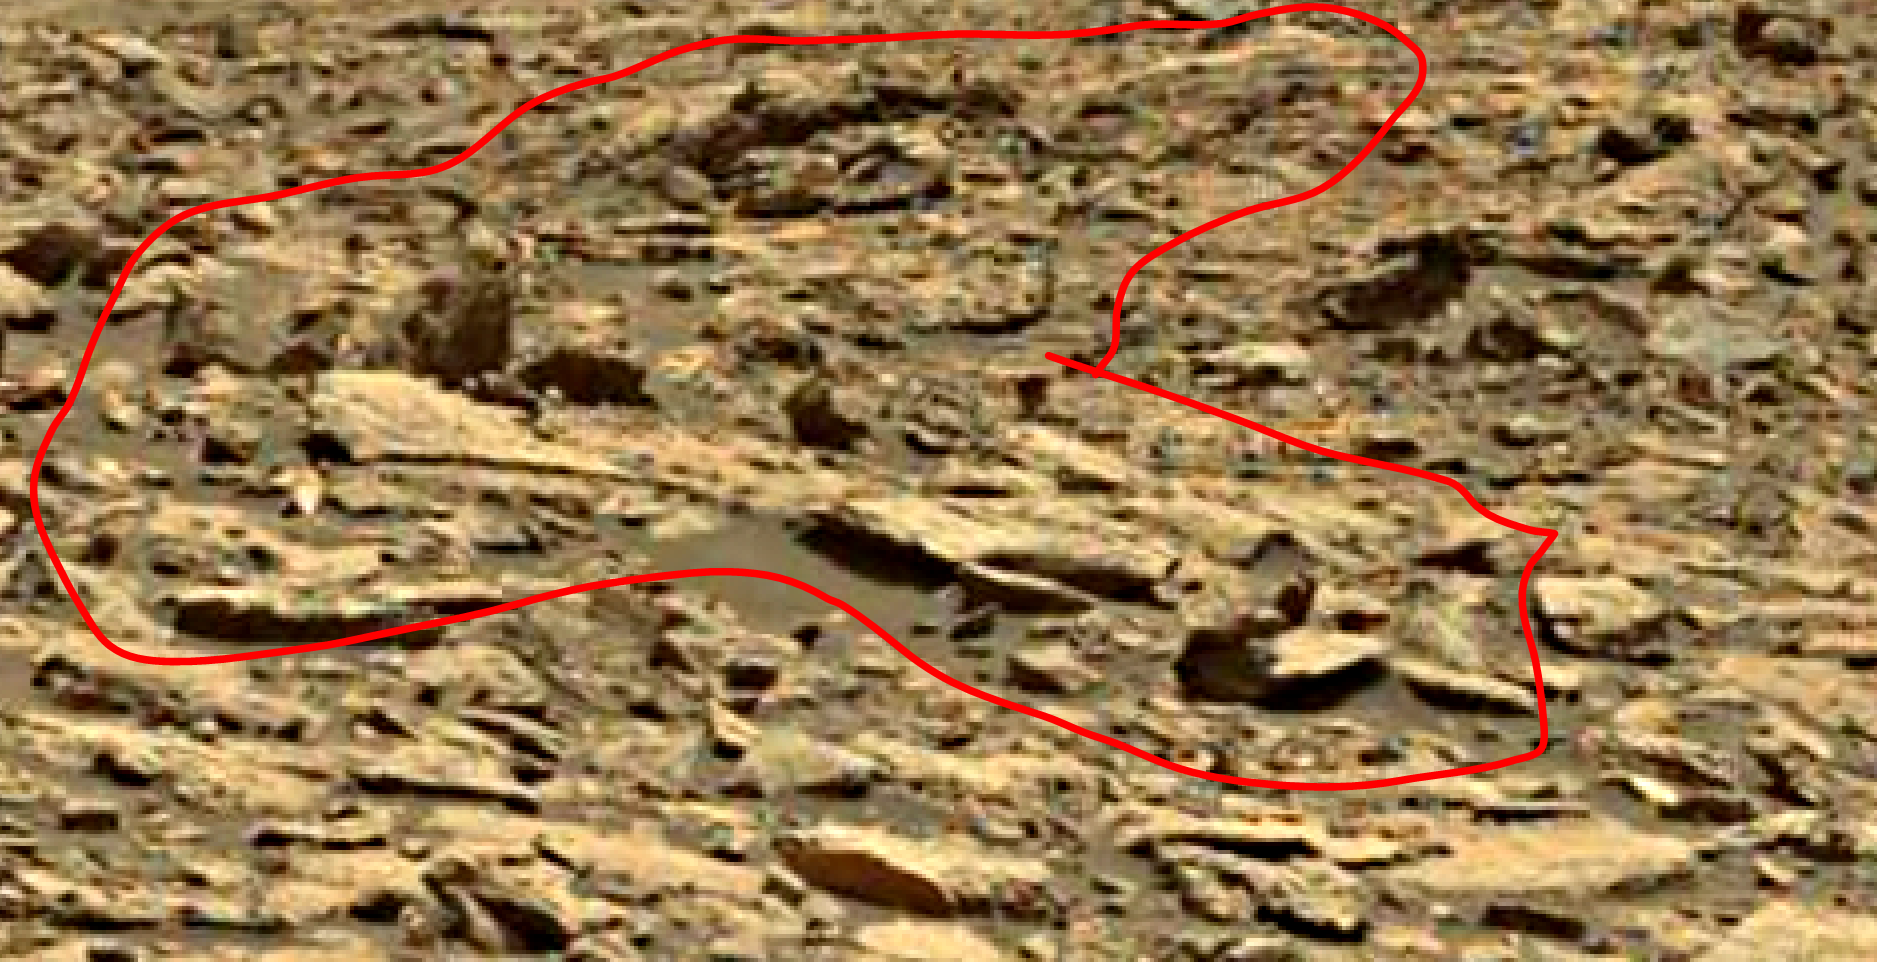 mars sol 1438 anomaly artifacts 3a was life on mars